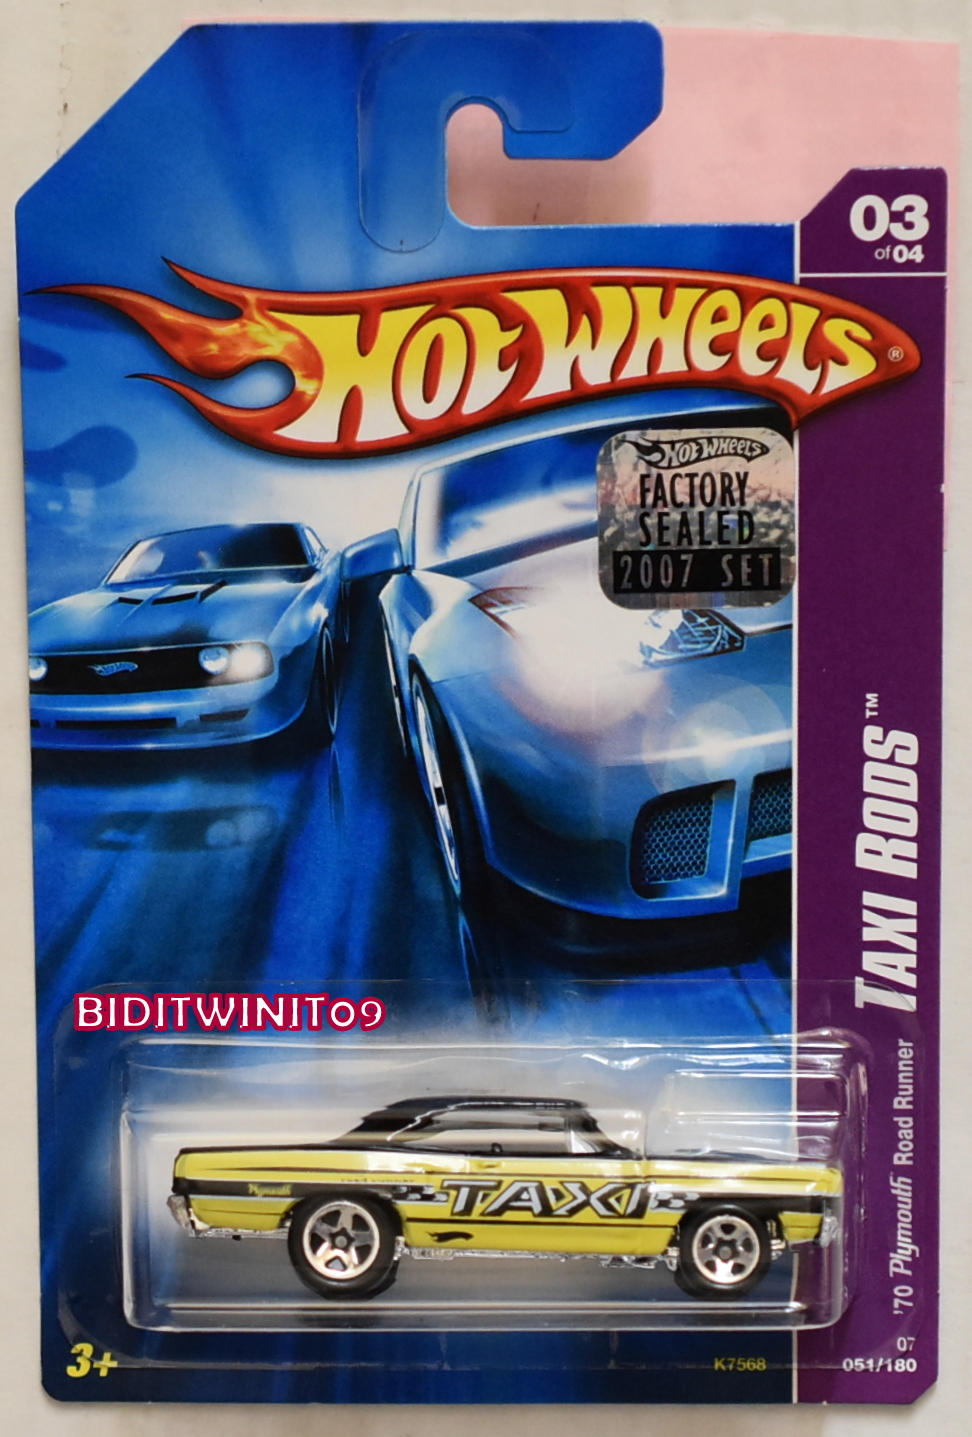 HOT WHEELS 2007 TAXI RODS '70 PLYMOUTH ROAD RUNNER #03/04 YELLOW FACTORY SEALED